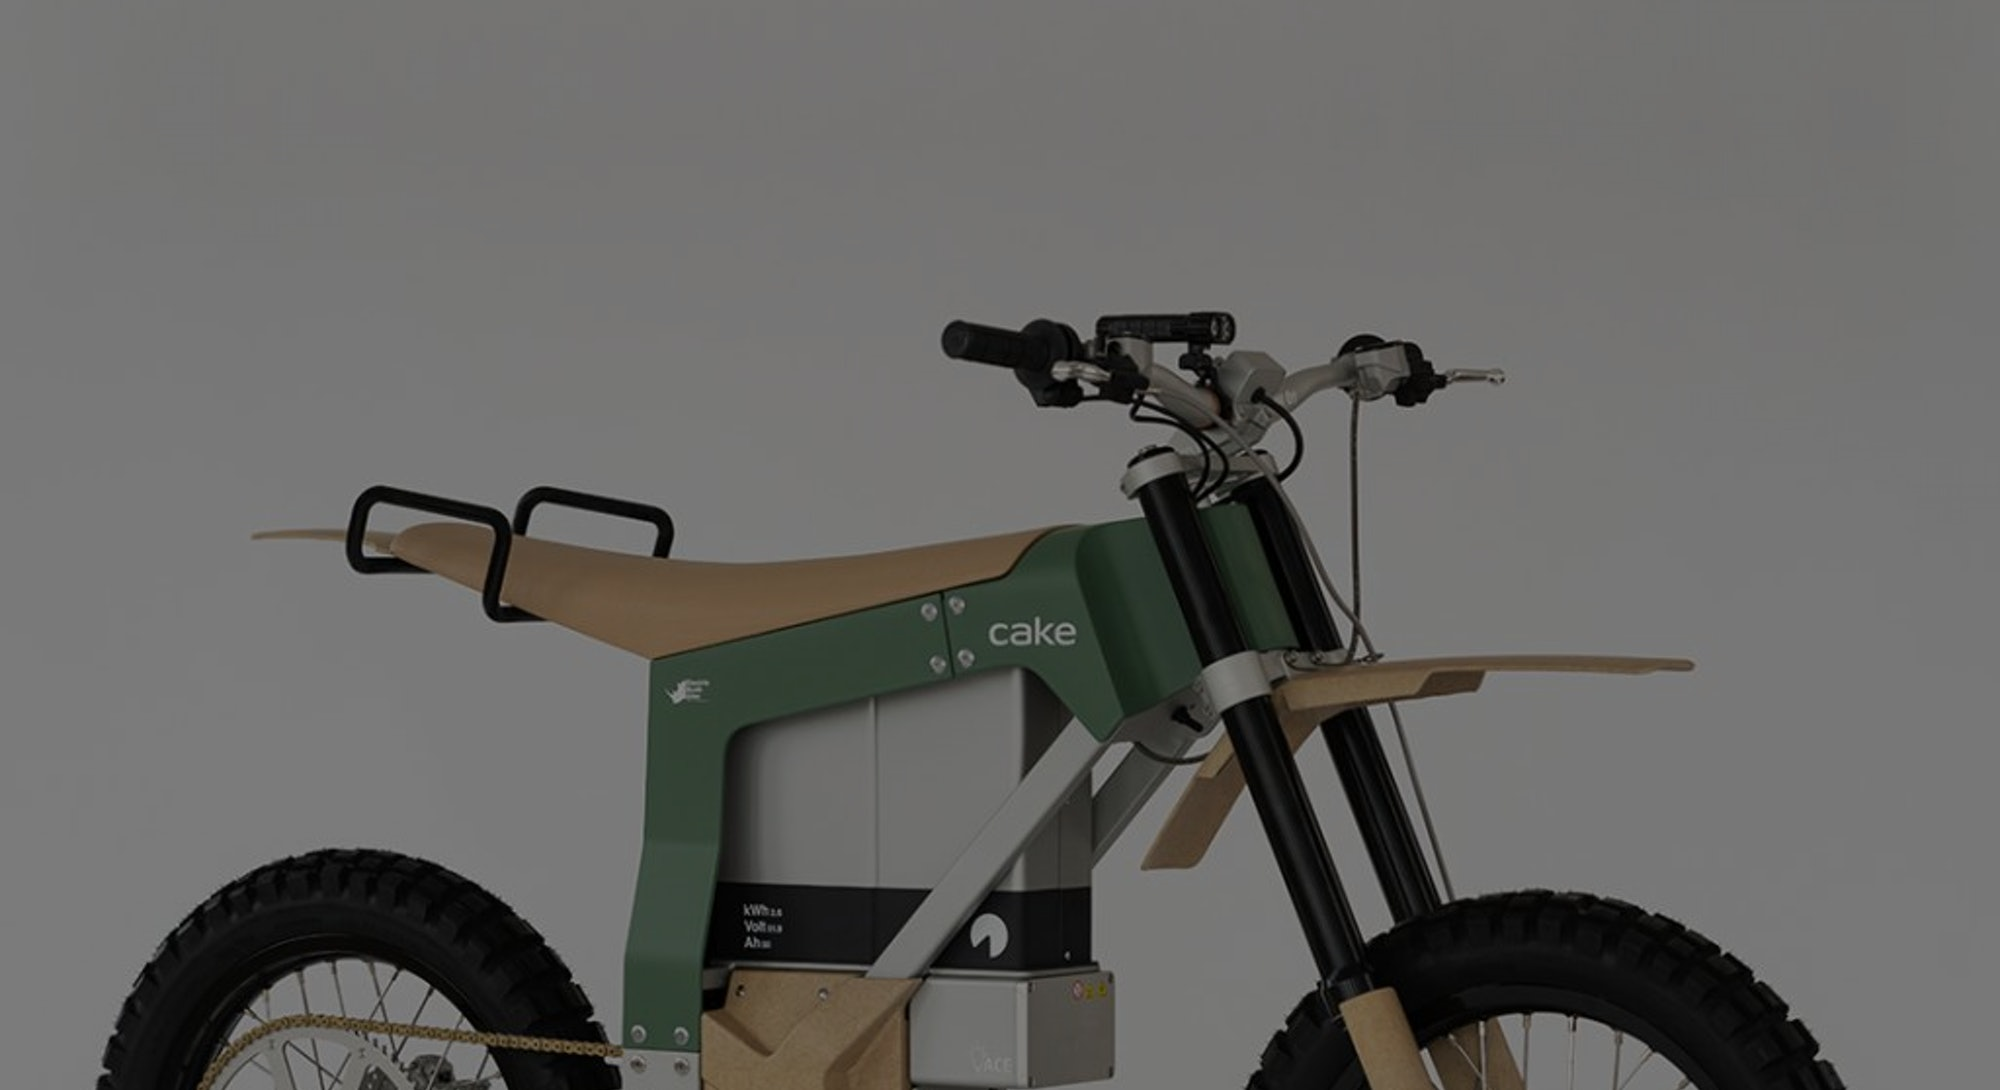 The Kalk AP anti-poaching electric motorcycle from Cake.